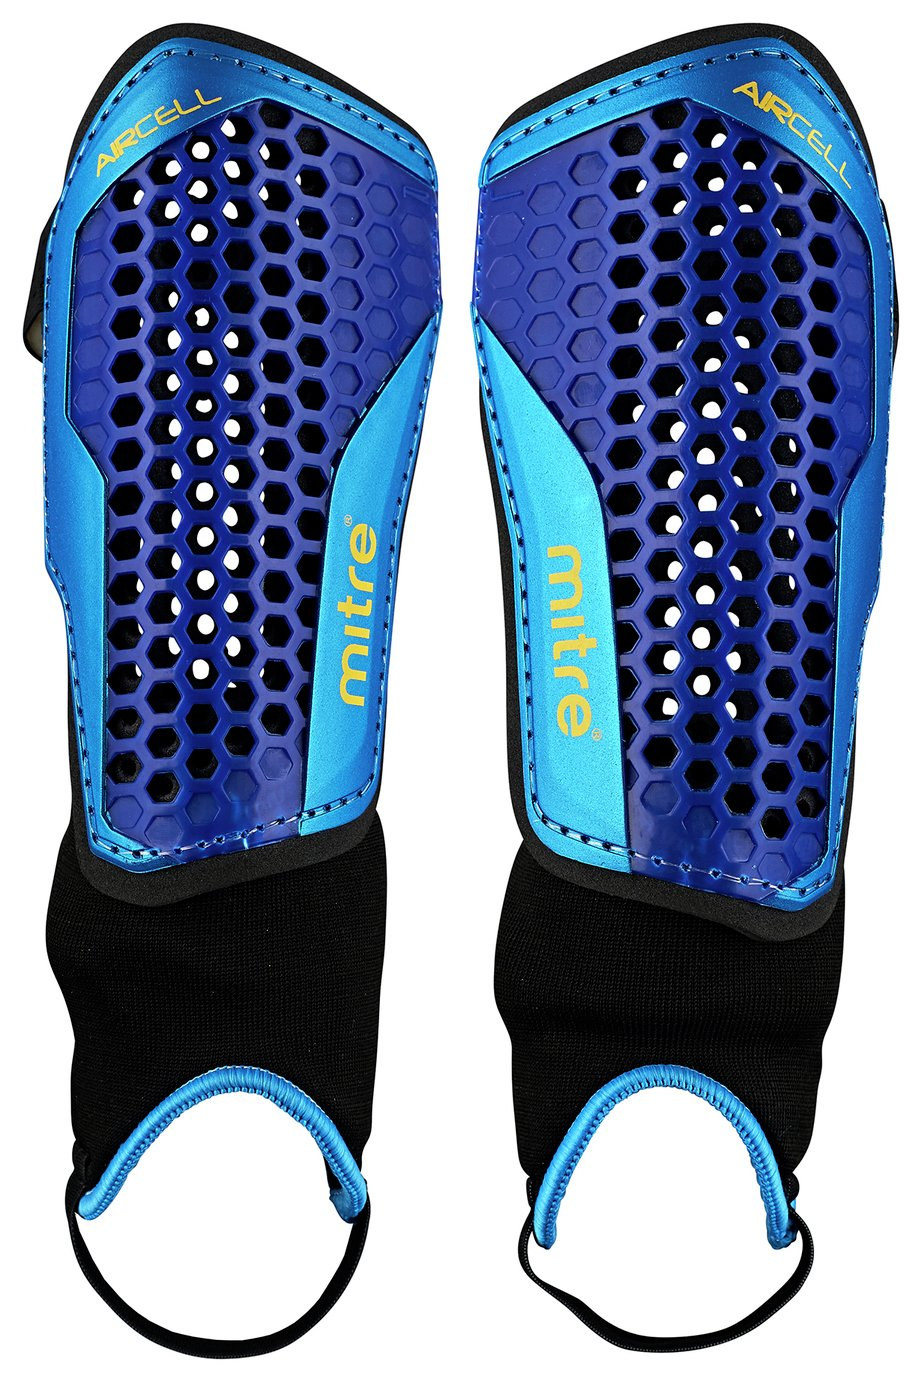 Mitre Aircell Carbon Shin Pads - Small